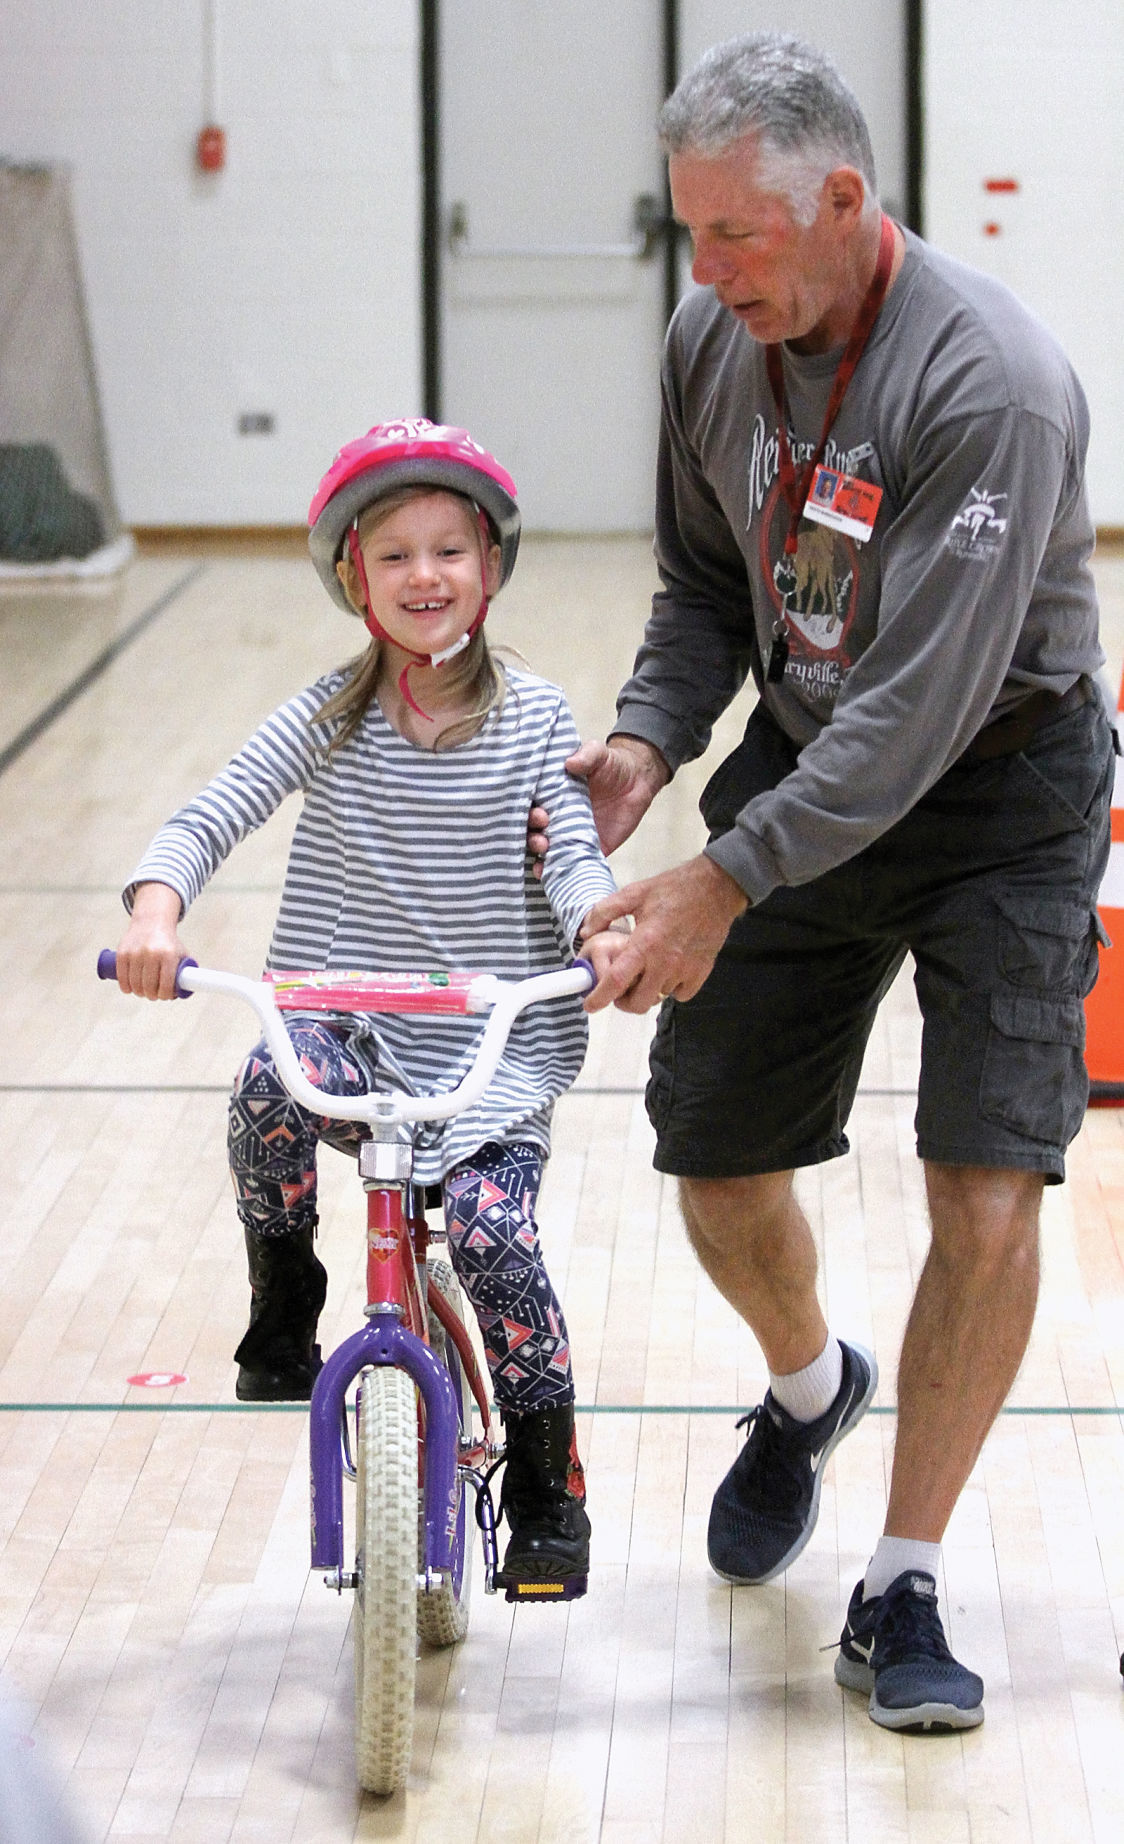 Keith Burroughs helps a John Sevier Elementary student learn to ride a bicycle